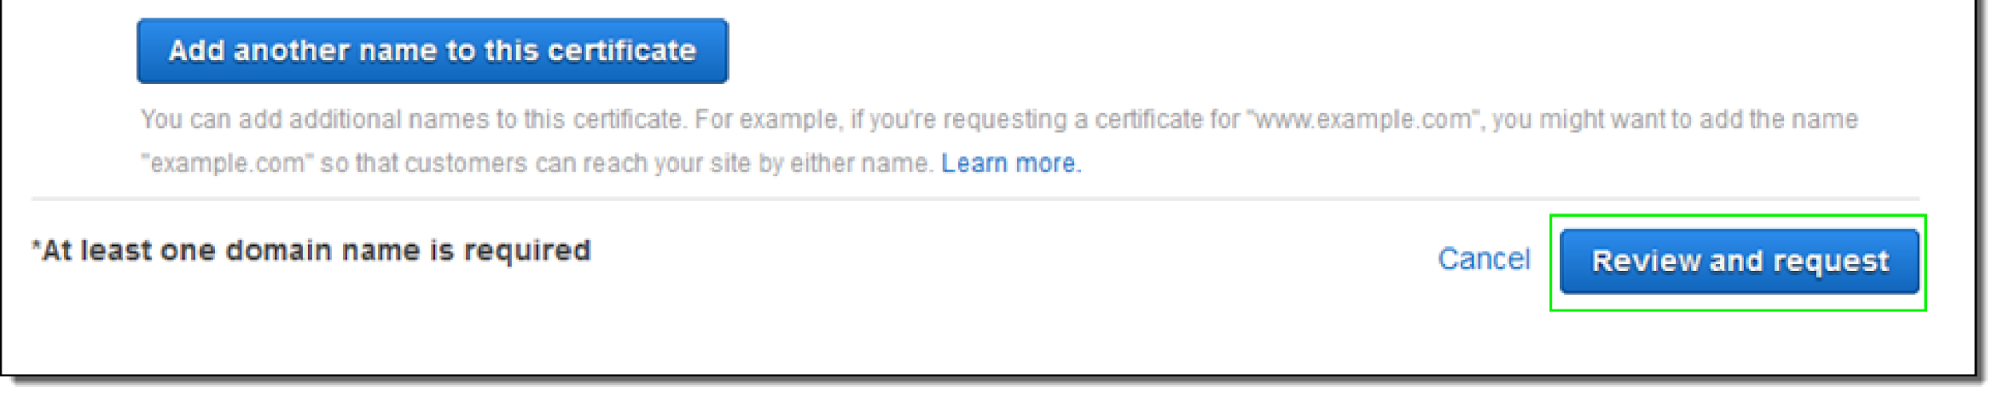 AWS Certificate Manager - Review Domain Name